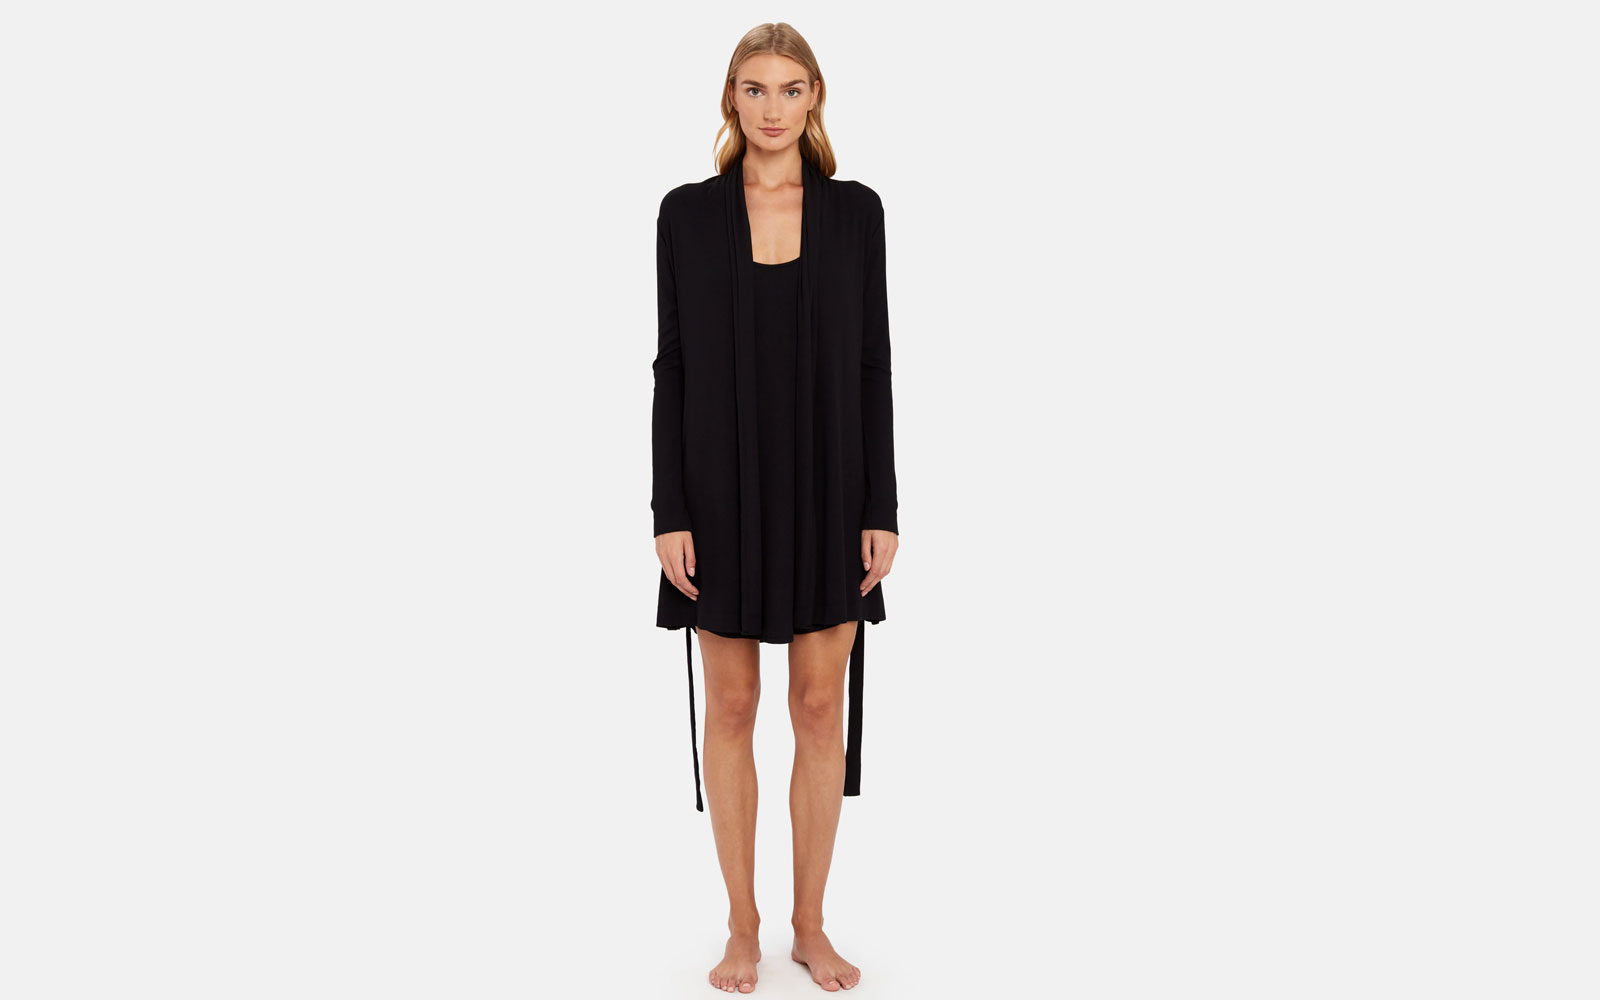 Woman Wearing Black Short Nightgown and Robe